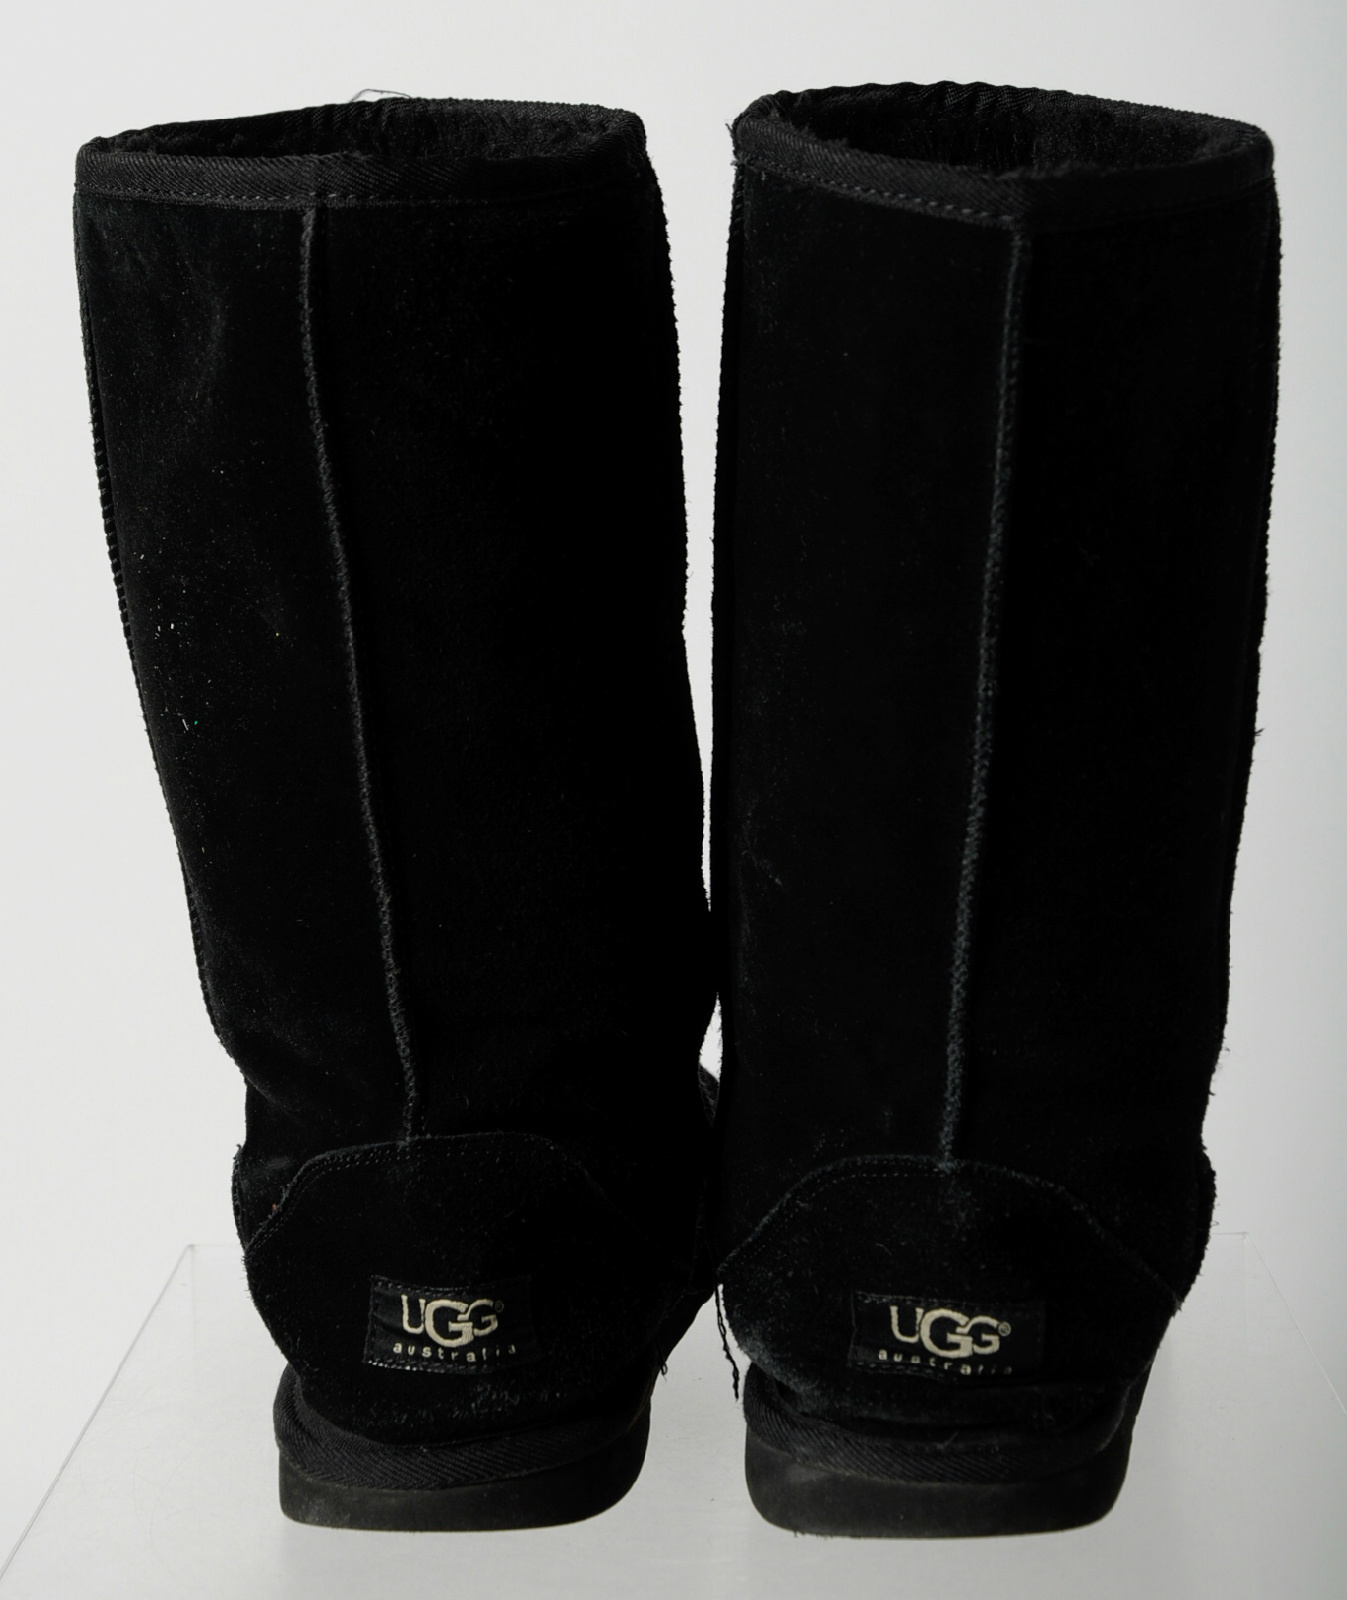 7e33255ab6f Uggs Warm Weather - cheap watches mgc-gas.com